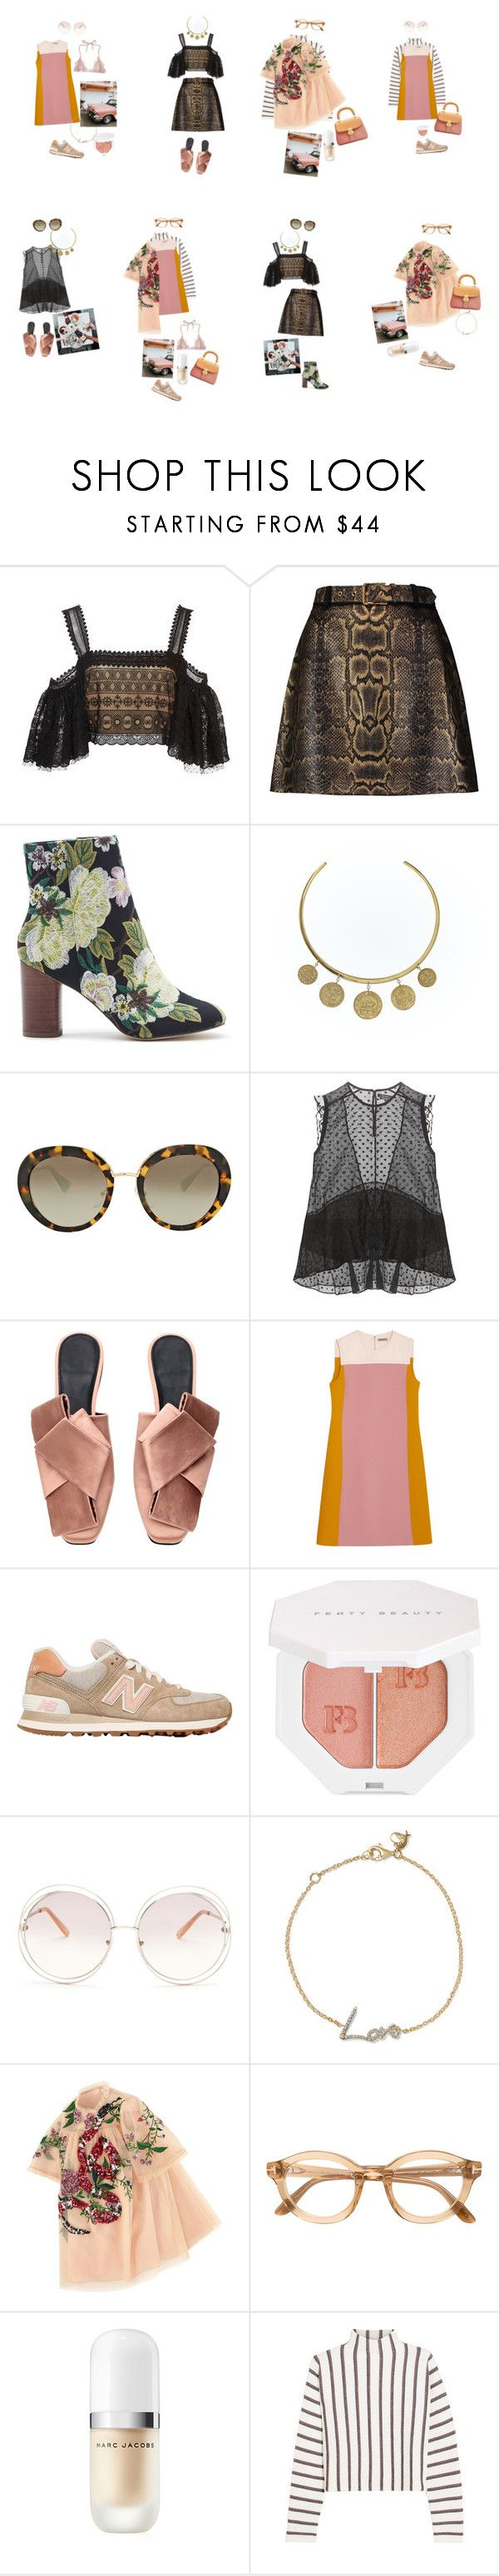 """Untitled #2825"" by duumbblond ❤ liked on Polyvore featuring Costarellos, Roberto Cavalli, Sole Society, Pembe Club, Prada, Isabel Marant, H&M, Bottega Veneta, New Balance and Puma"